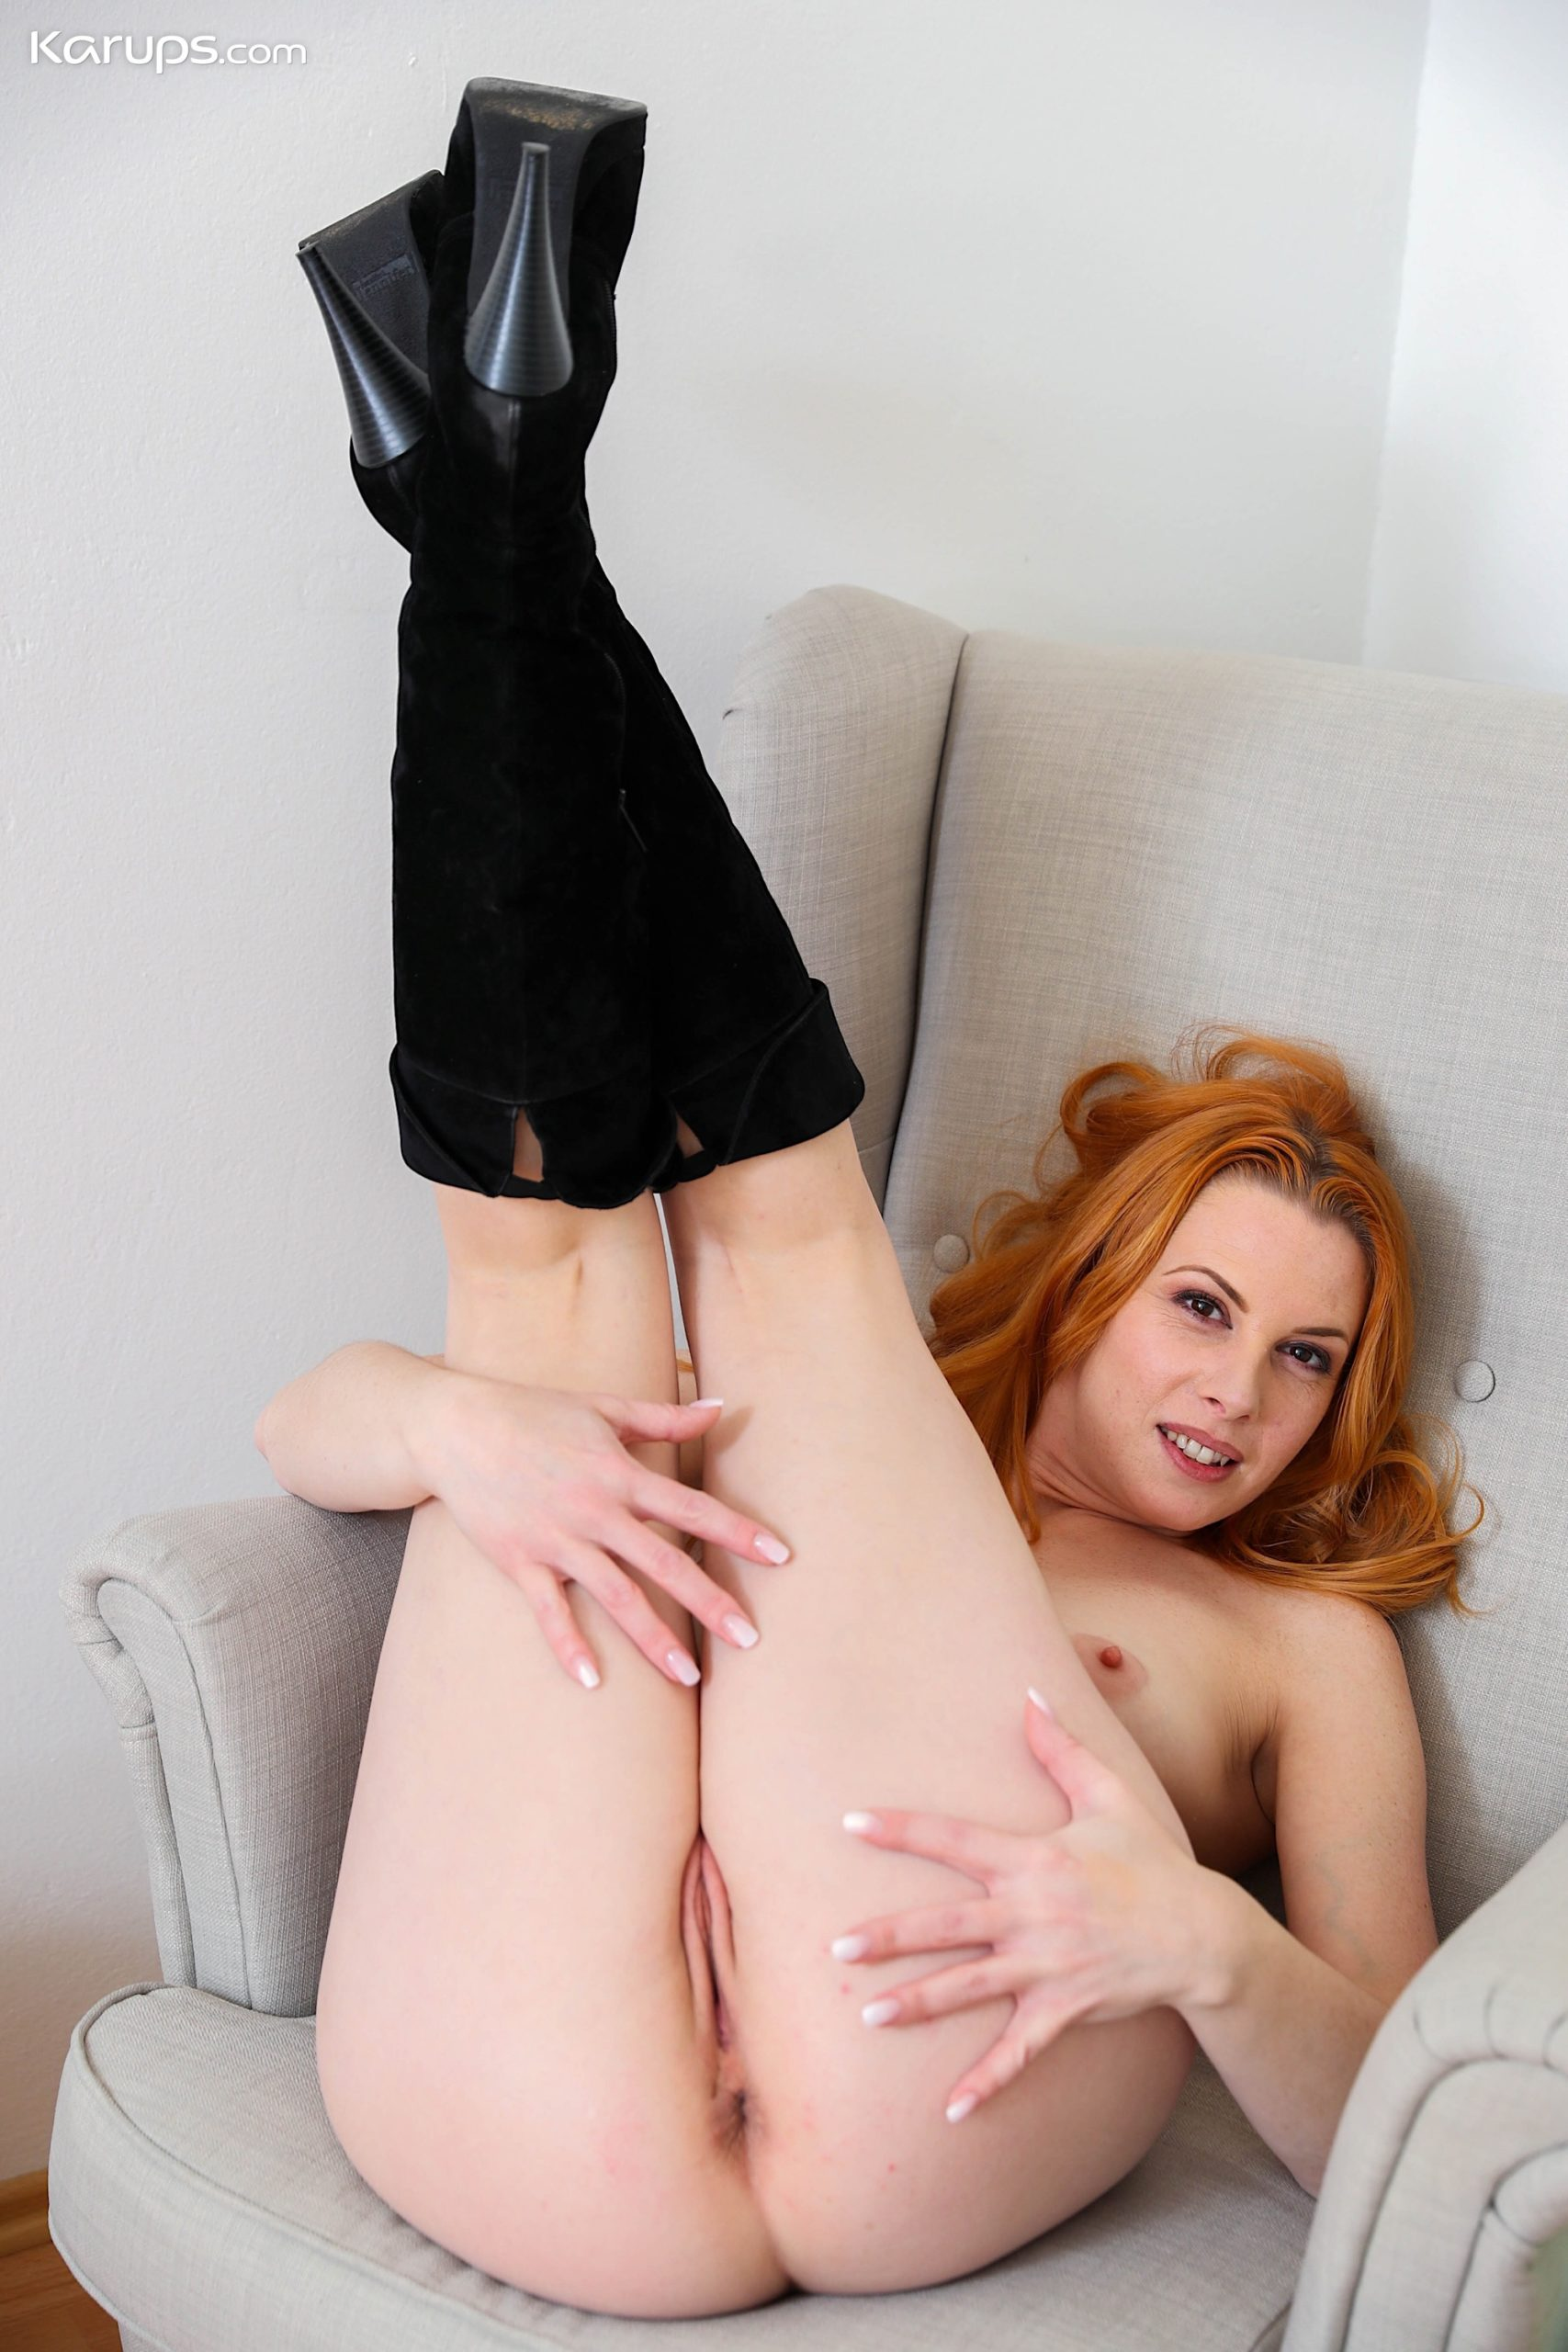 Redhead Milf Michelle Russo Licks Her Smaller Tits And Spreads Her Box At Karupsow